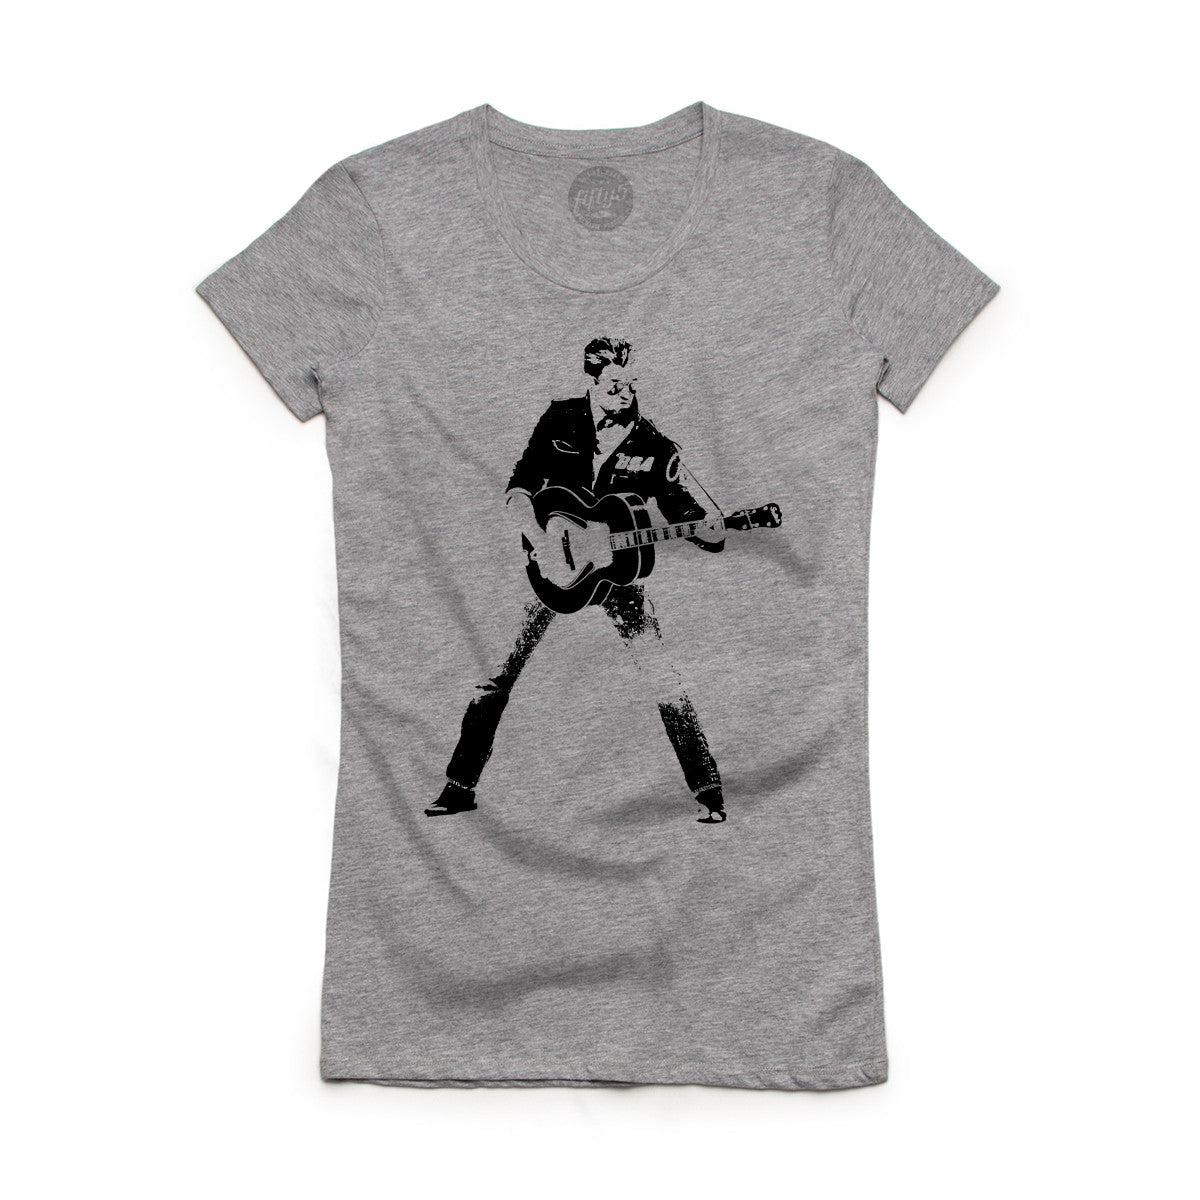 George Michael T-Shirt